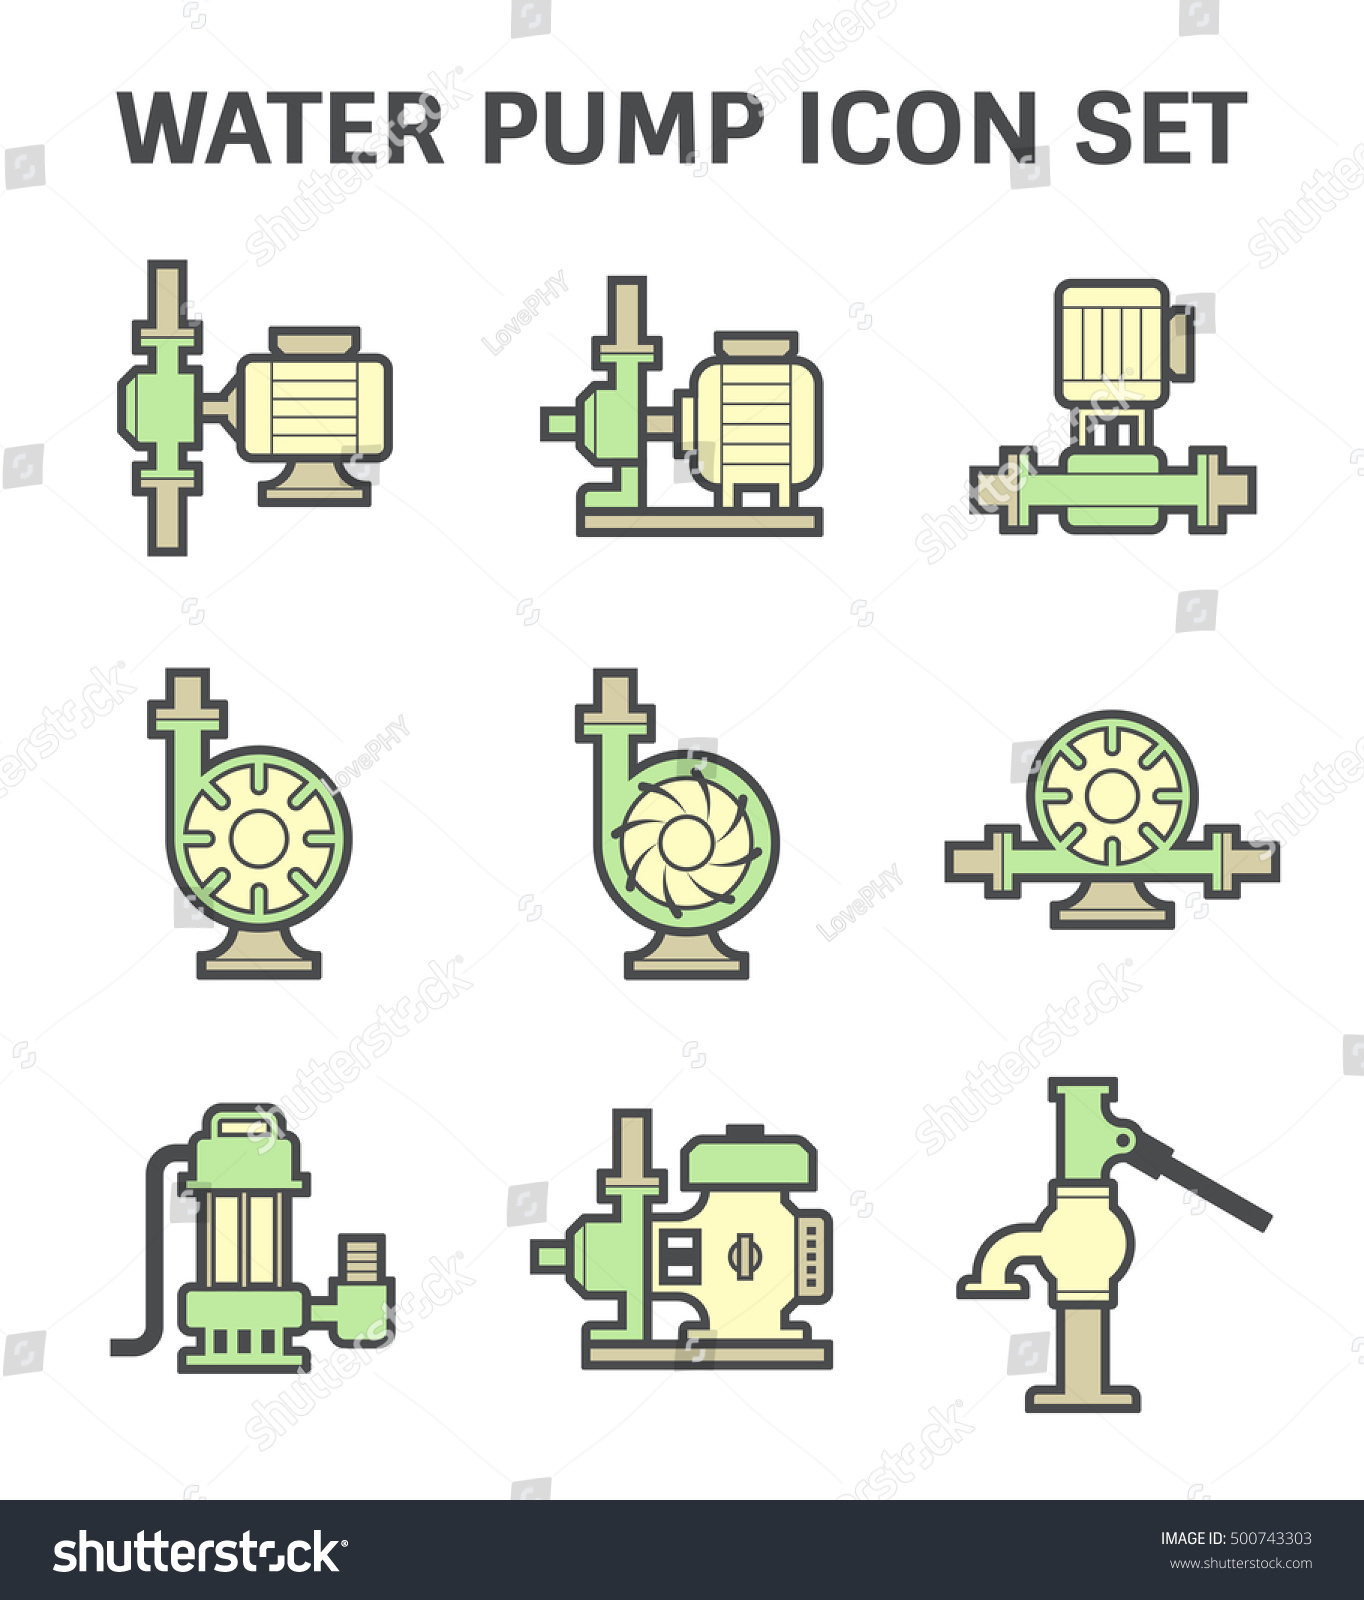 hight resolution of vector icon of electric water pump and steel pipe for water distribution isolated on white background